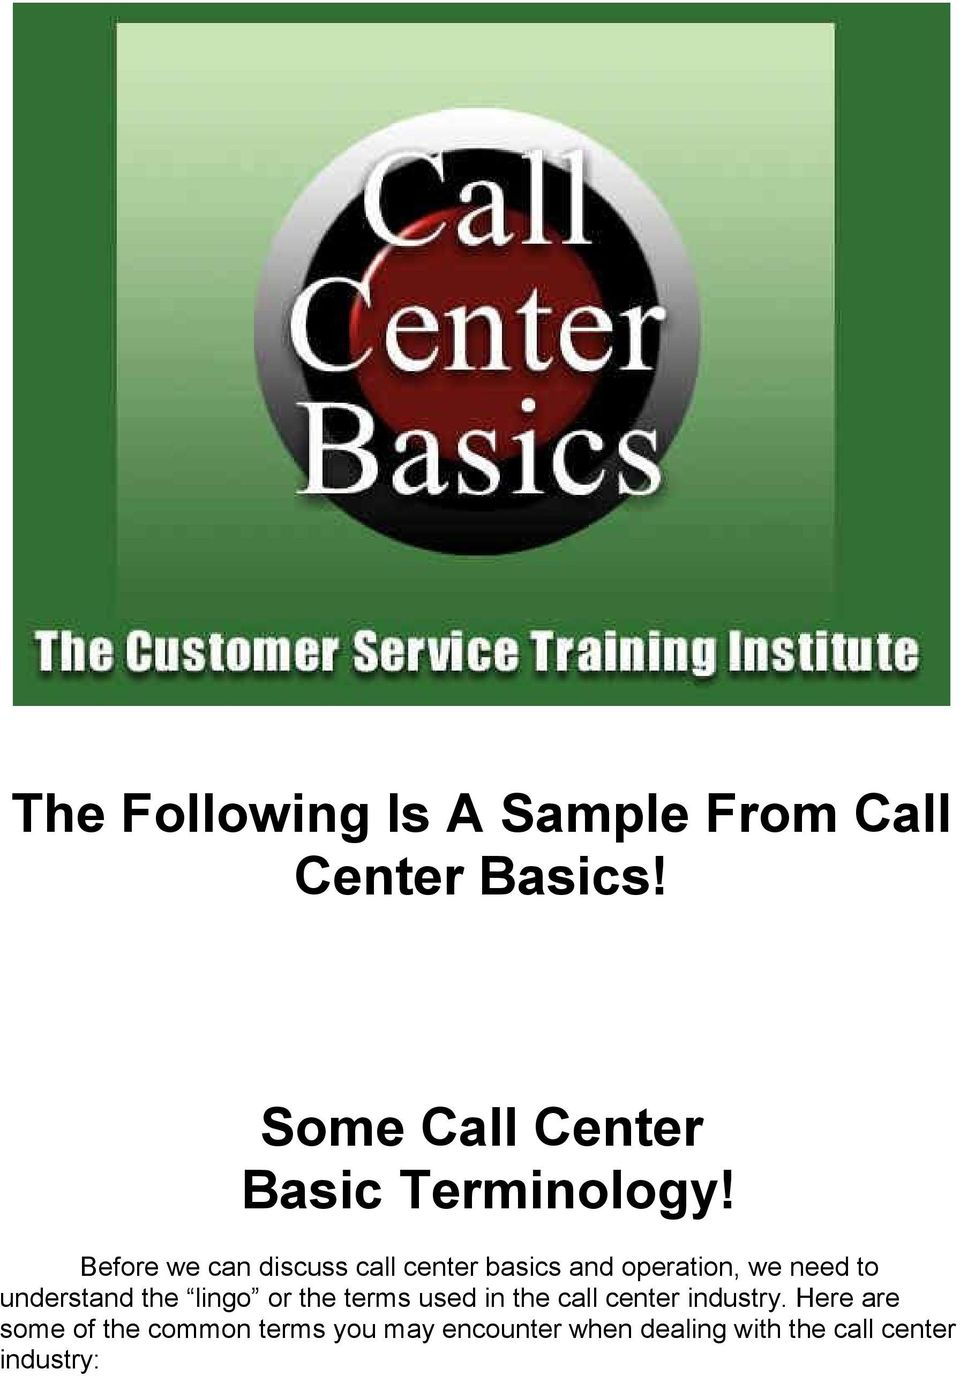 Before we can discuss call center basics and operation, we need to understand